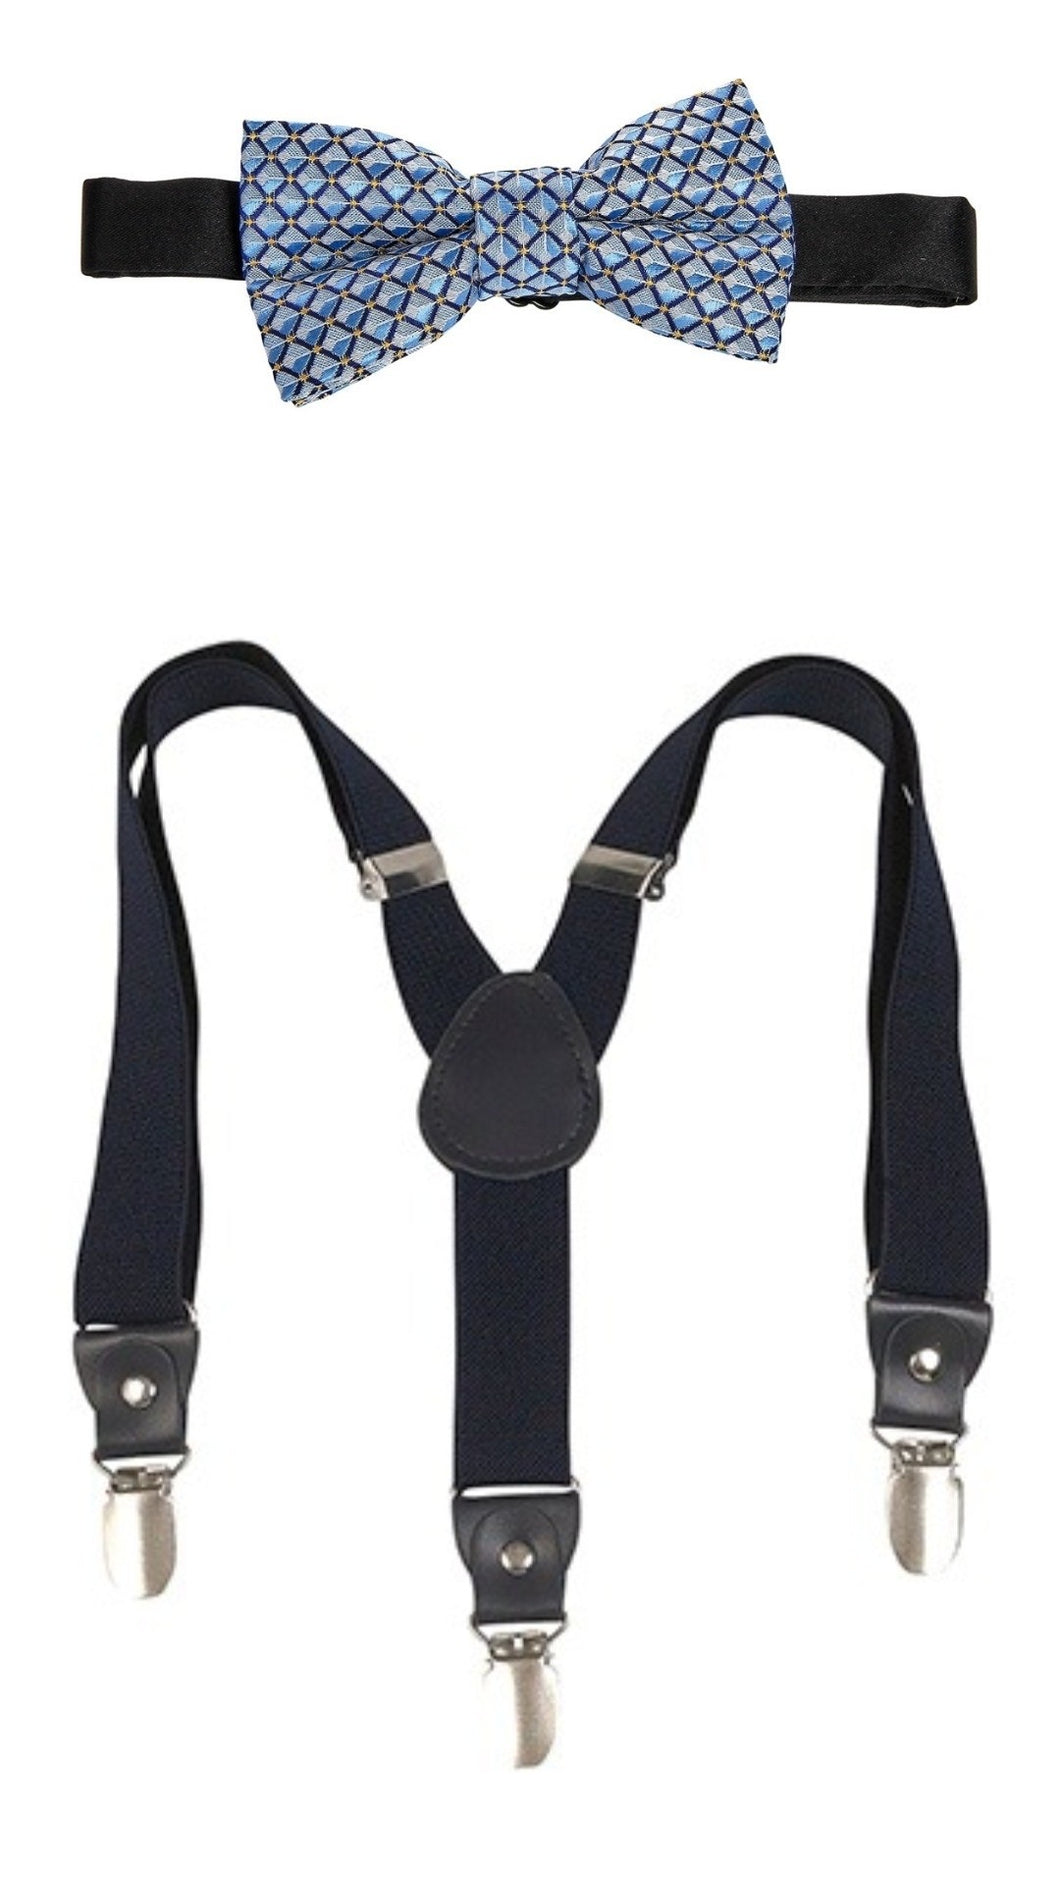 LB NAVY BLUE SUSPENDERS SET & LIGHT BLUE/NAVY BLUE DIAMOND BOW TIE SET